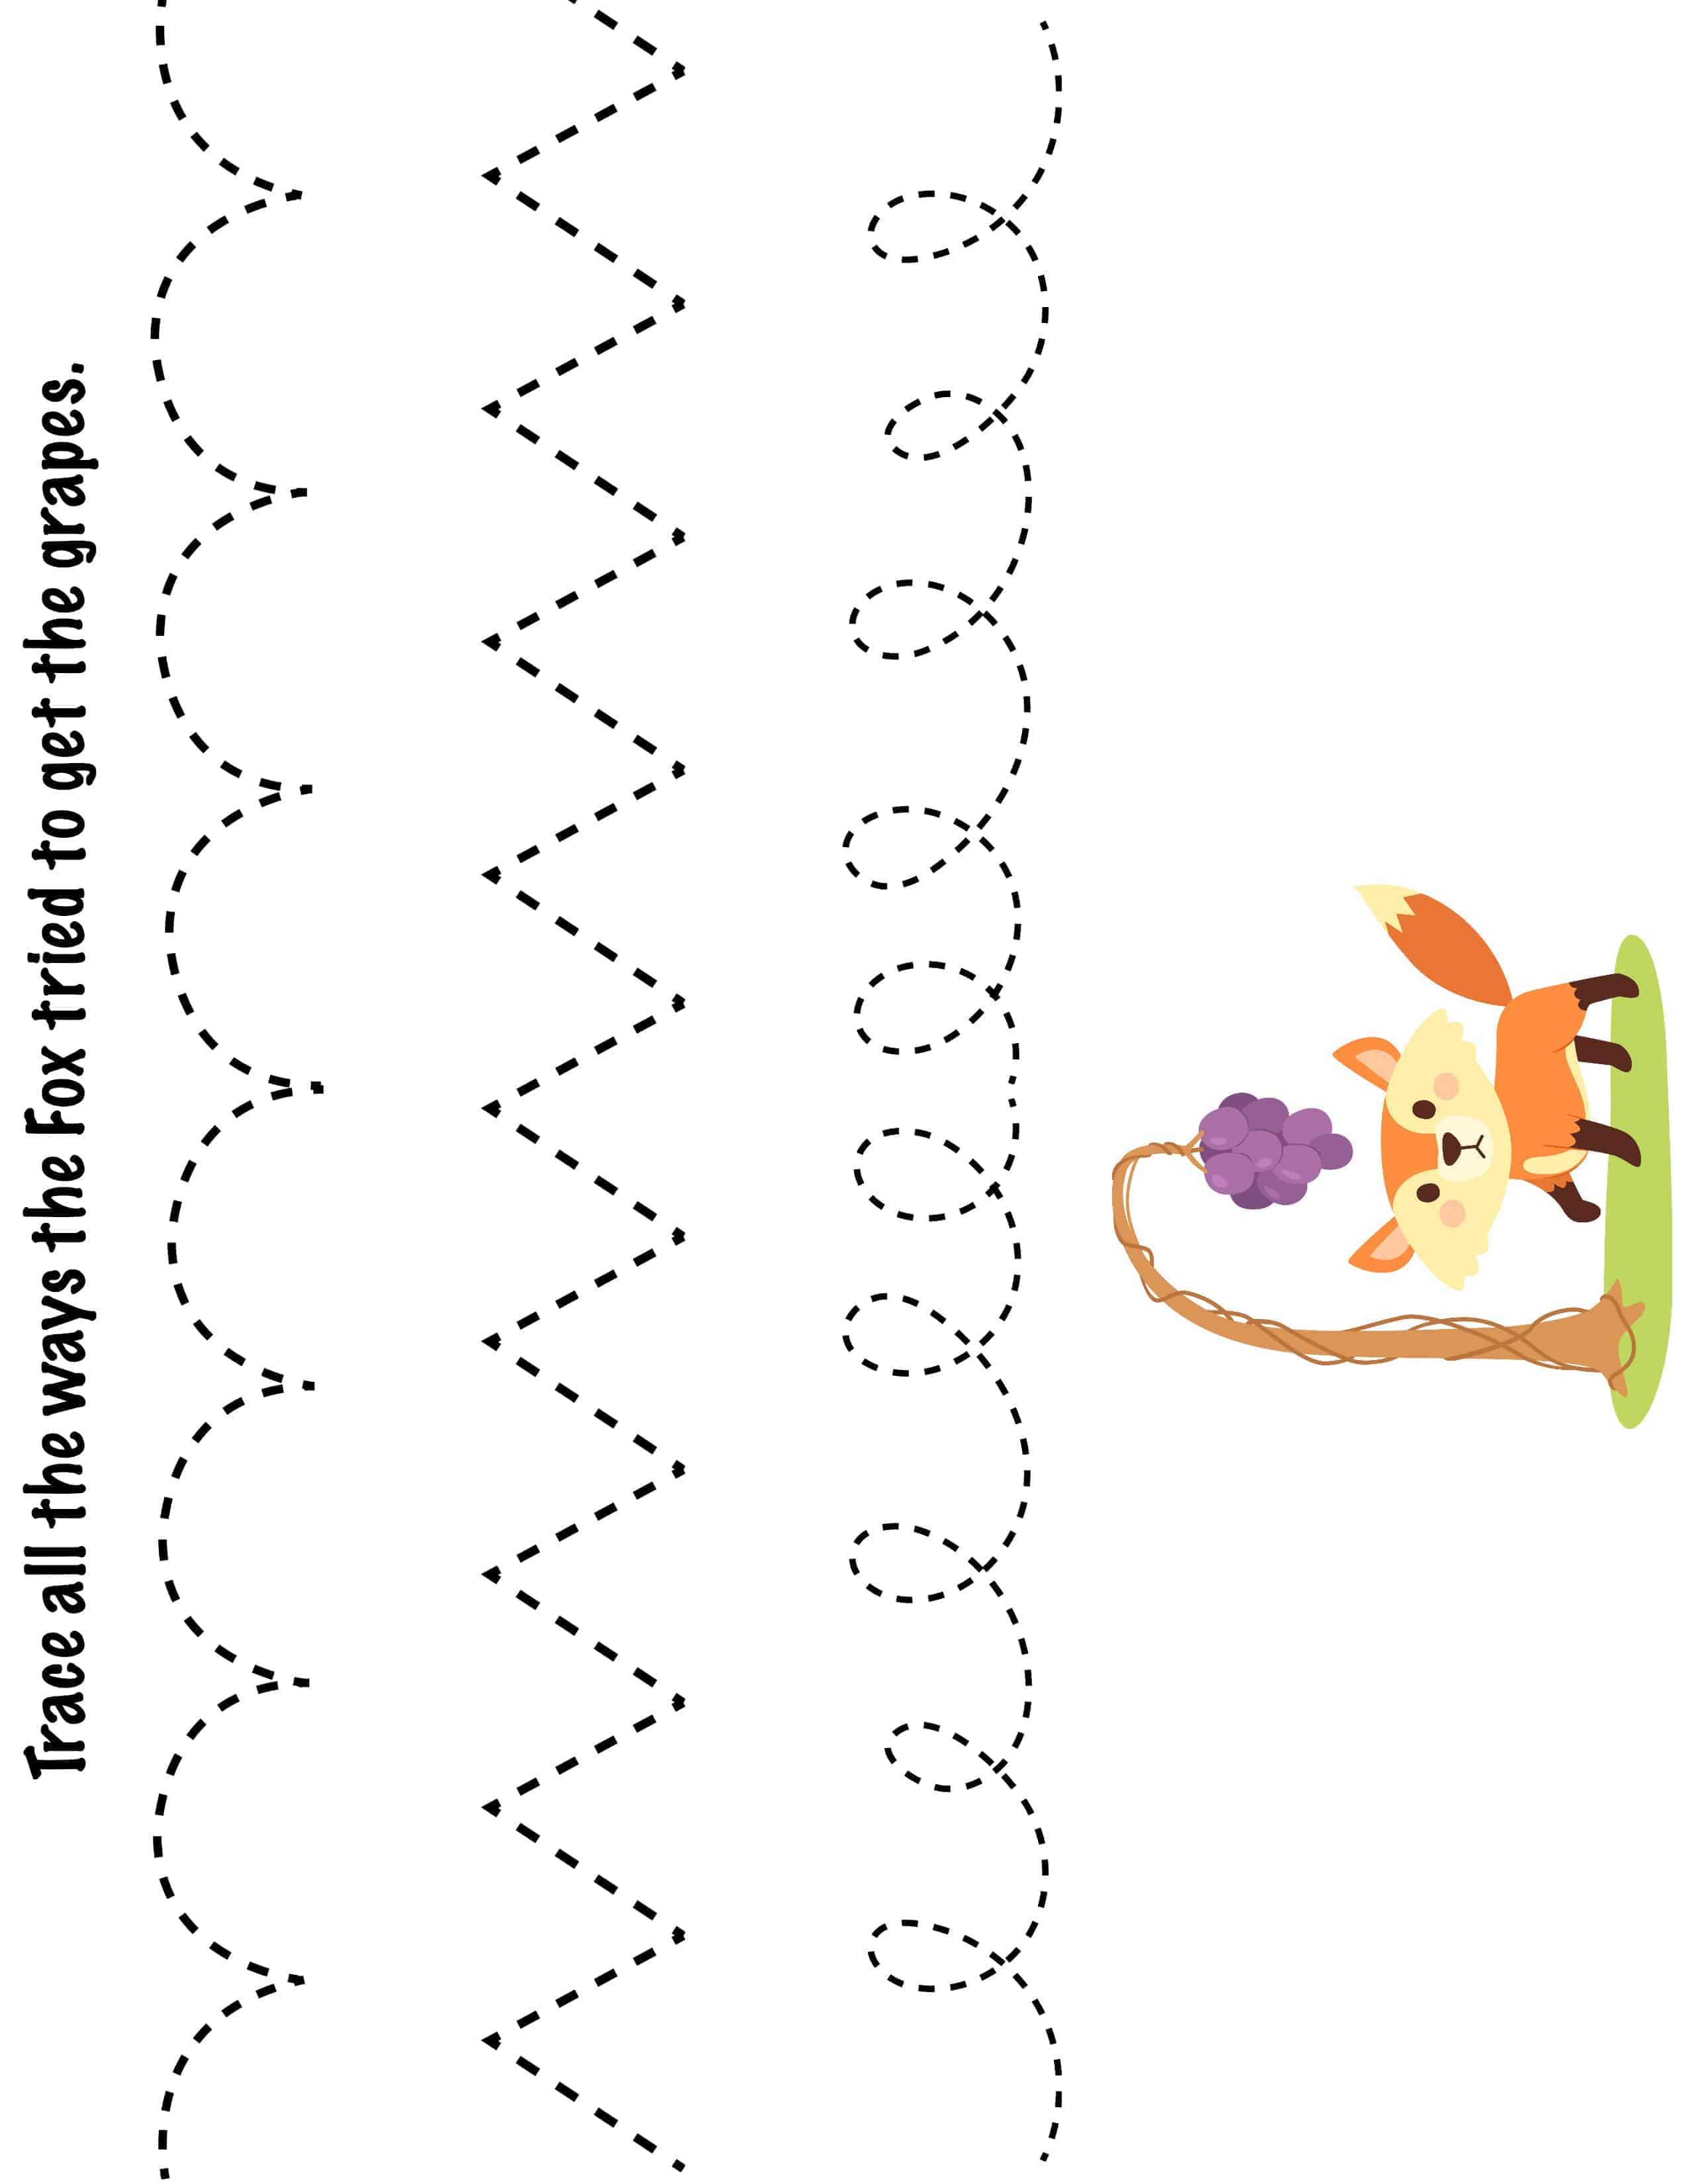 G S Trace Line Worksheet For Kids 2 Crafts And